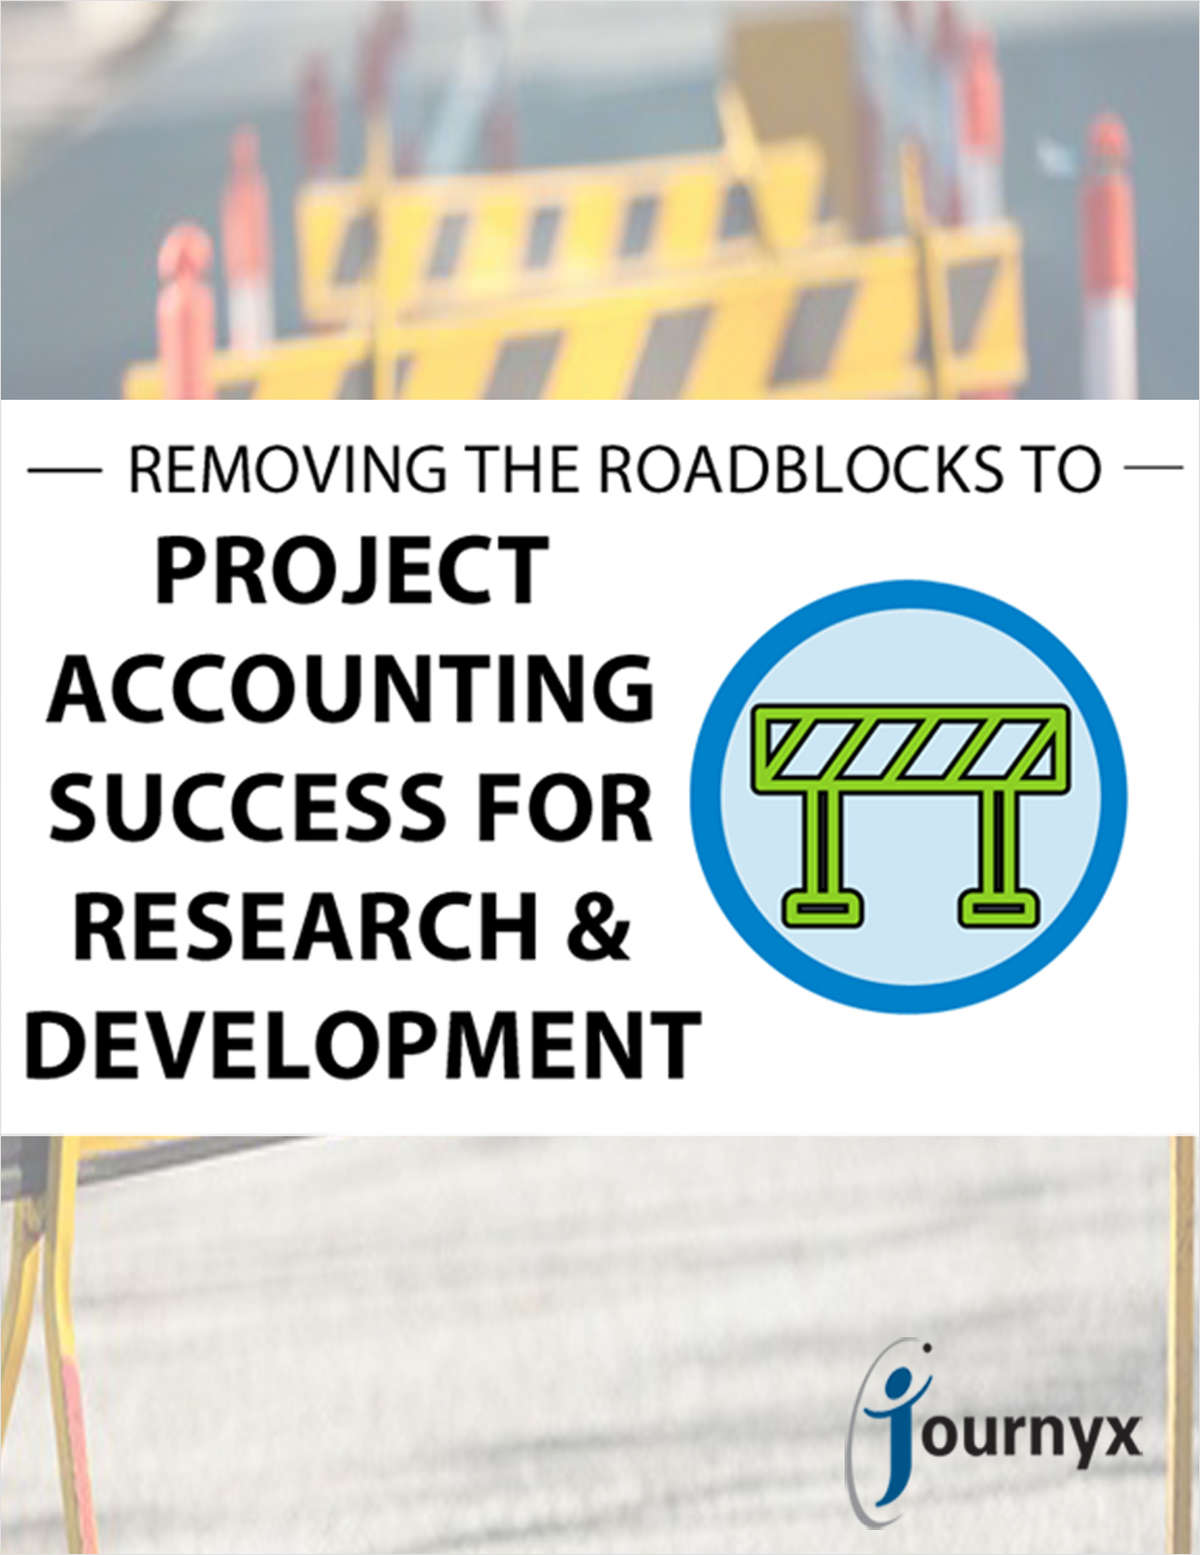 Removing the Roadblocks to Project Accounting Success for R&D